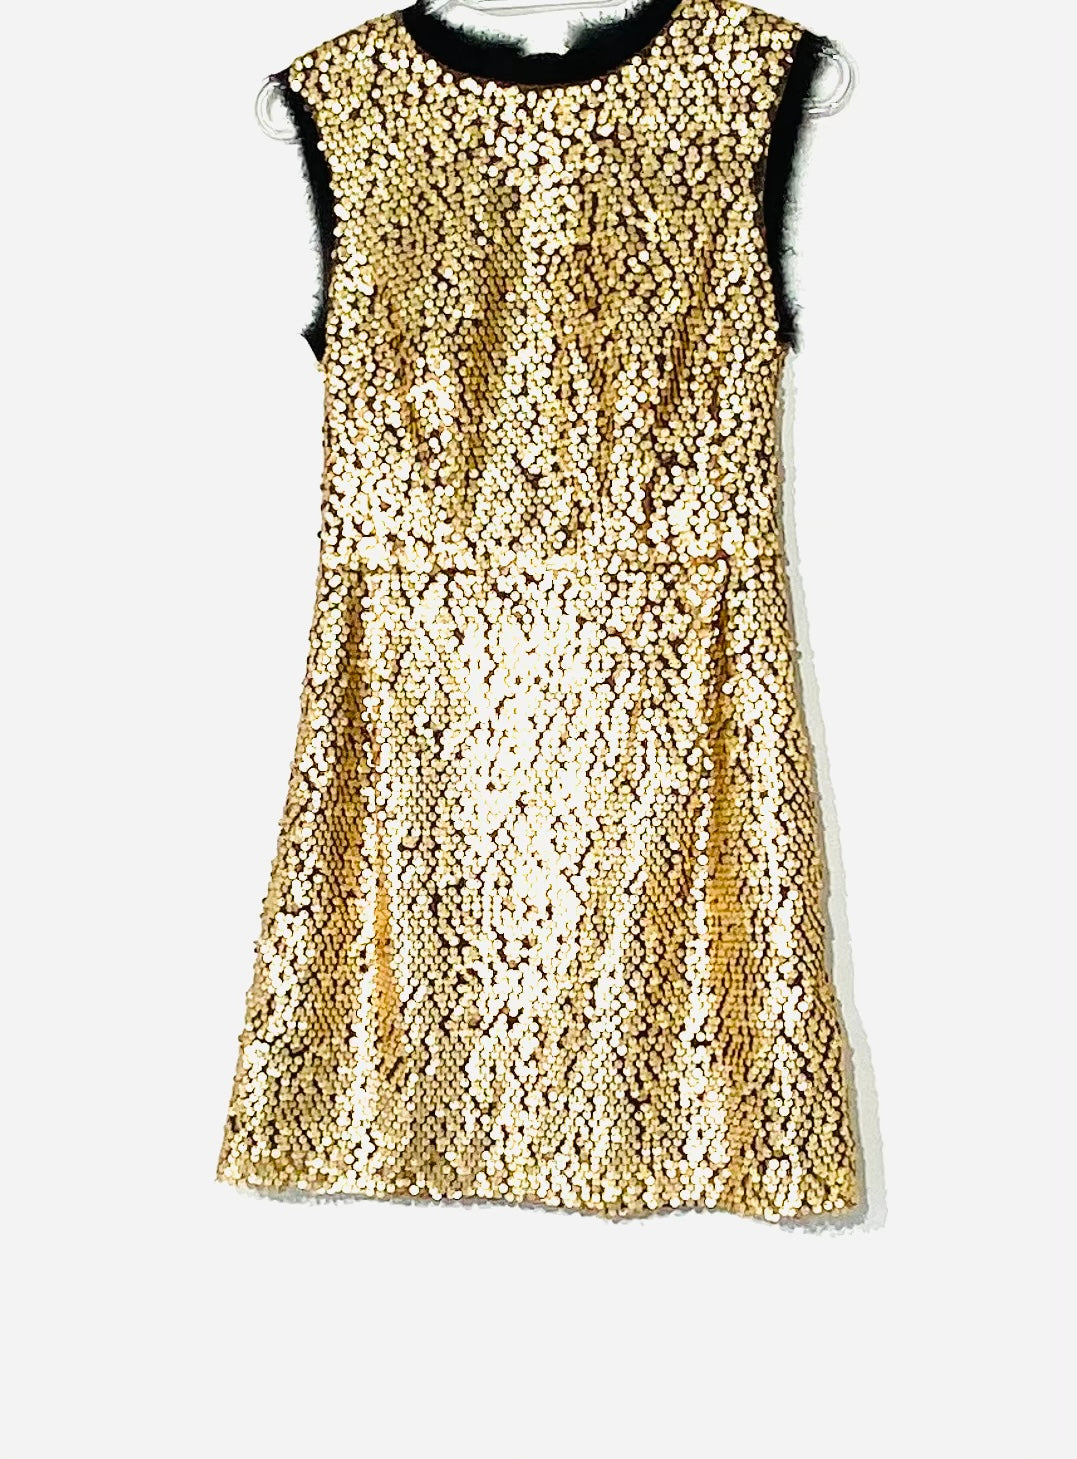 Primary Photo - BRAND: NANETTE LEPORE <BR>STYLE: DRESS SHORT SLEEVELESS <BR>COLOR: GOLD SEQUIN <BR>SIZE: XS /2<BR>SKU: 262-26275-69802